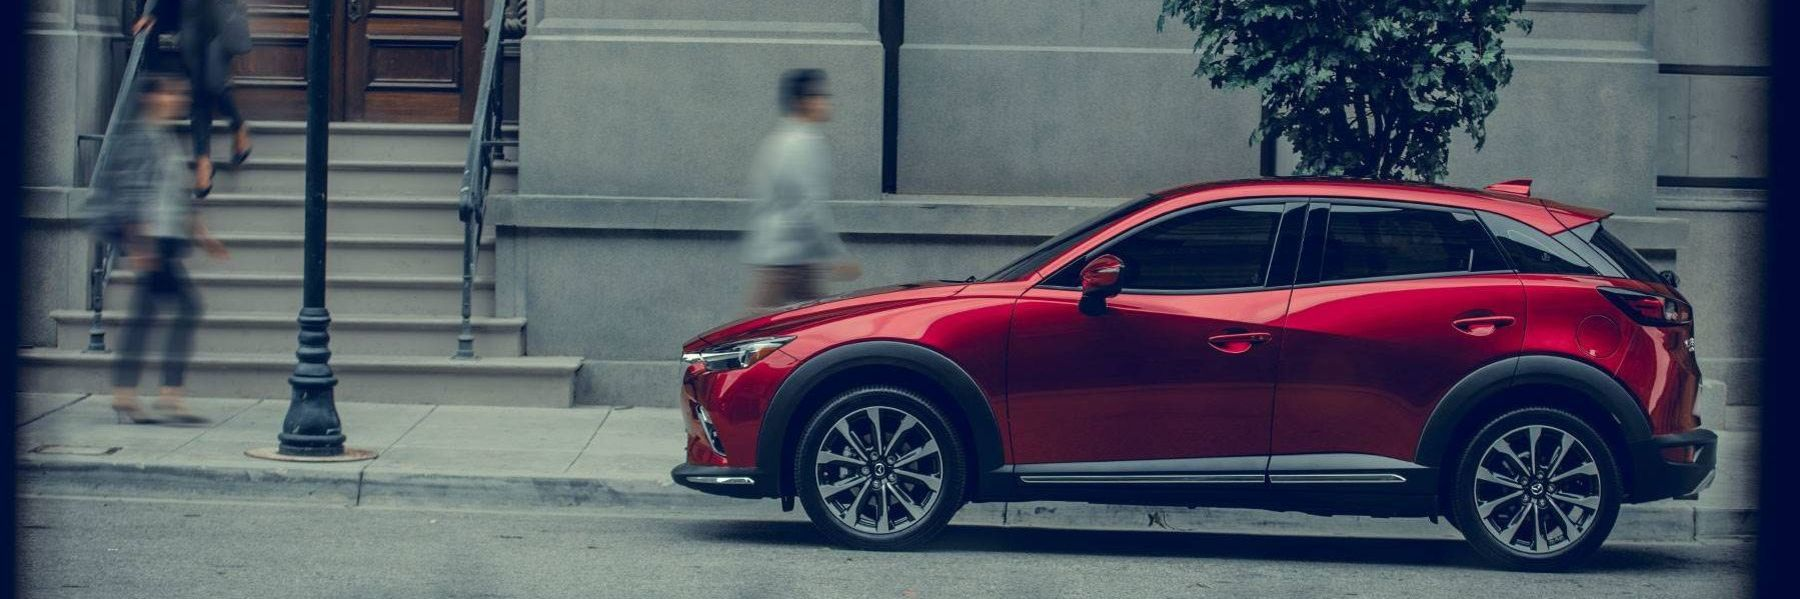 2019 Mazda CX-3 Leasing near Houston, TX